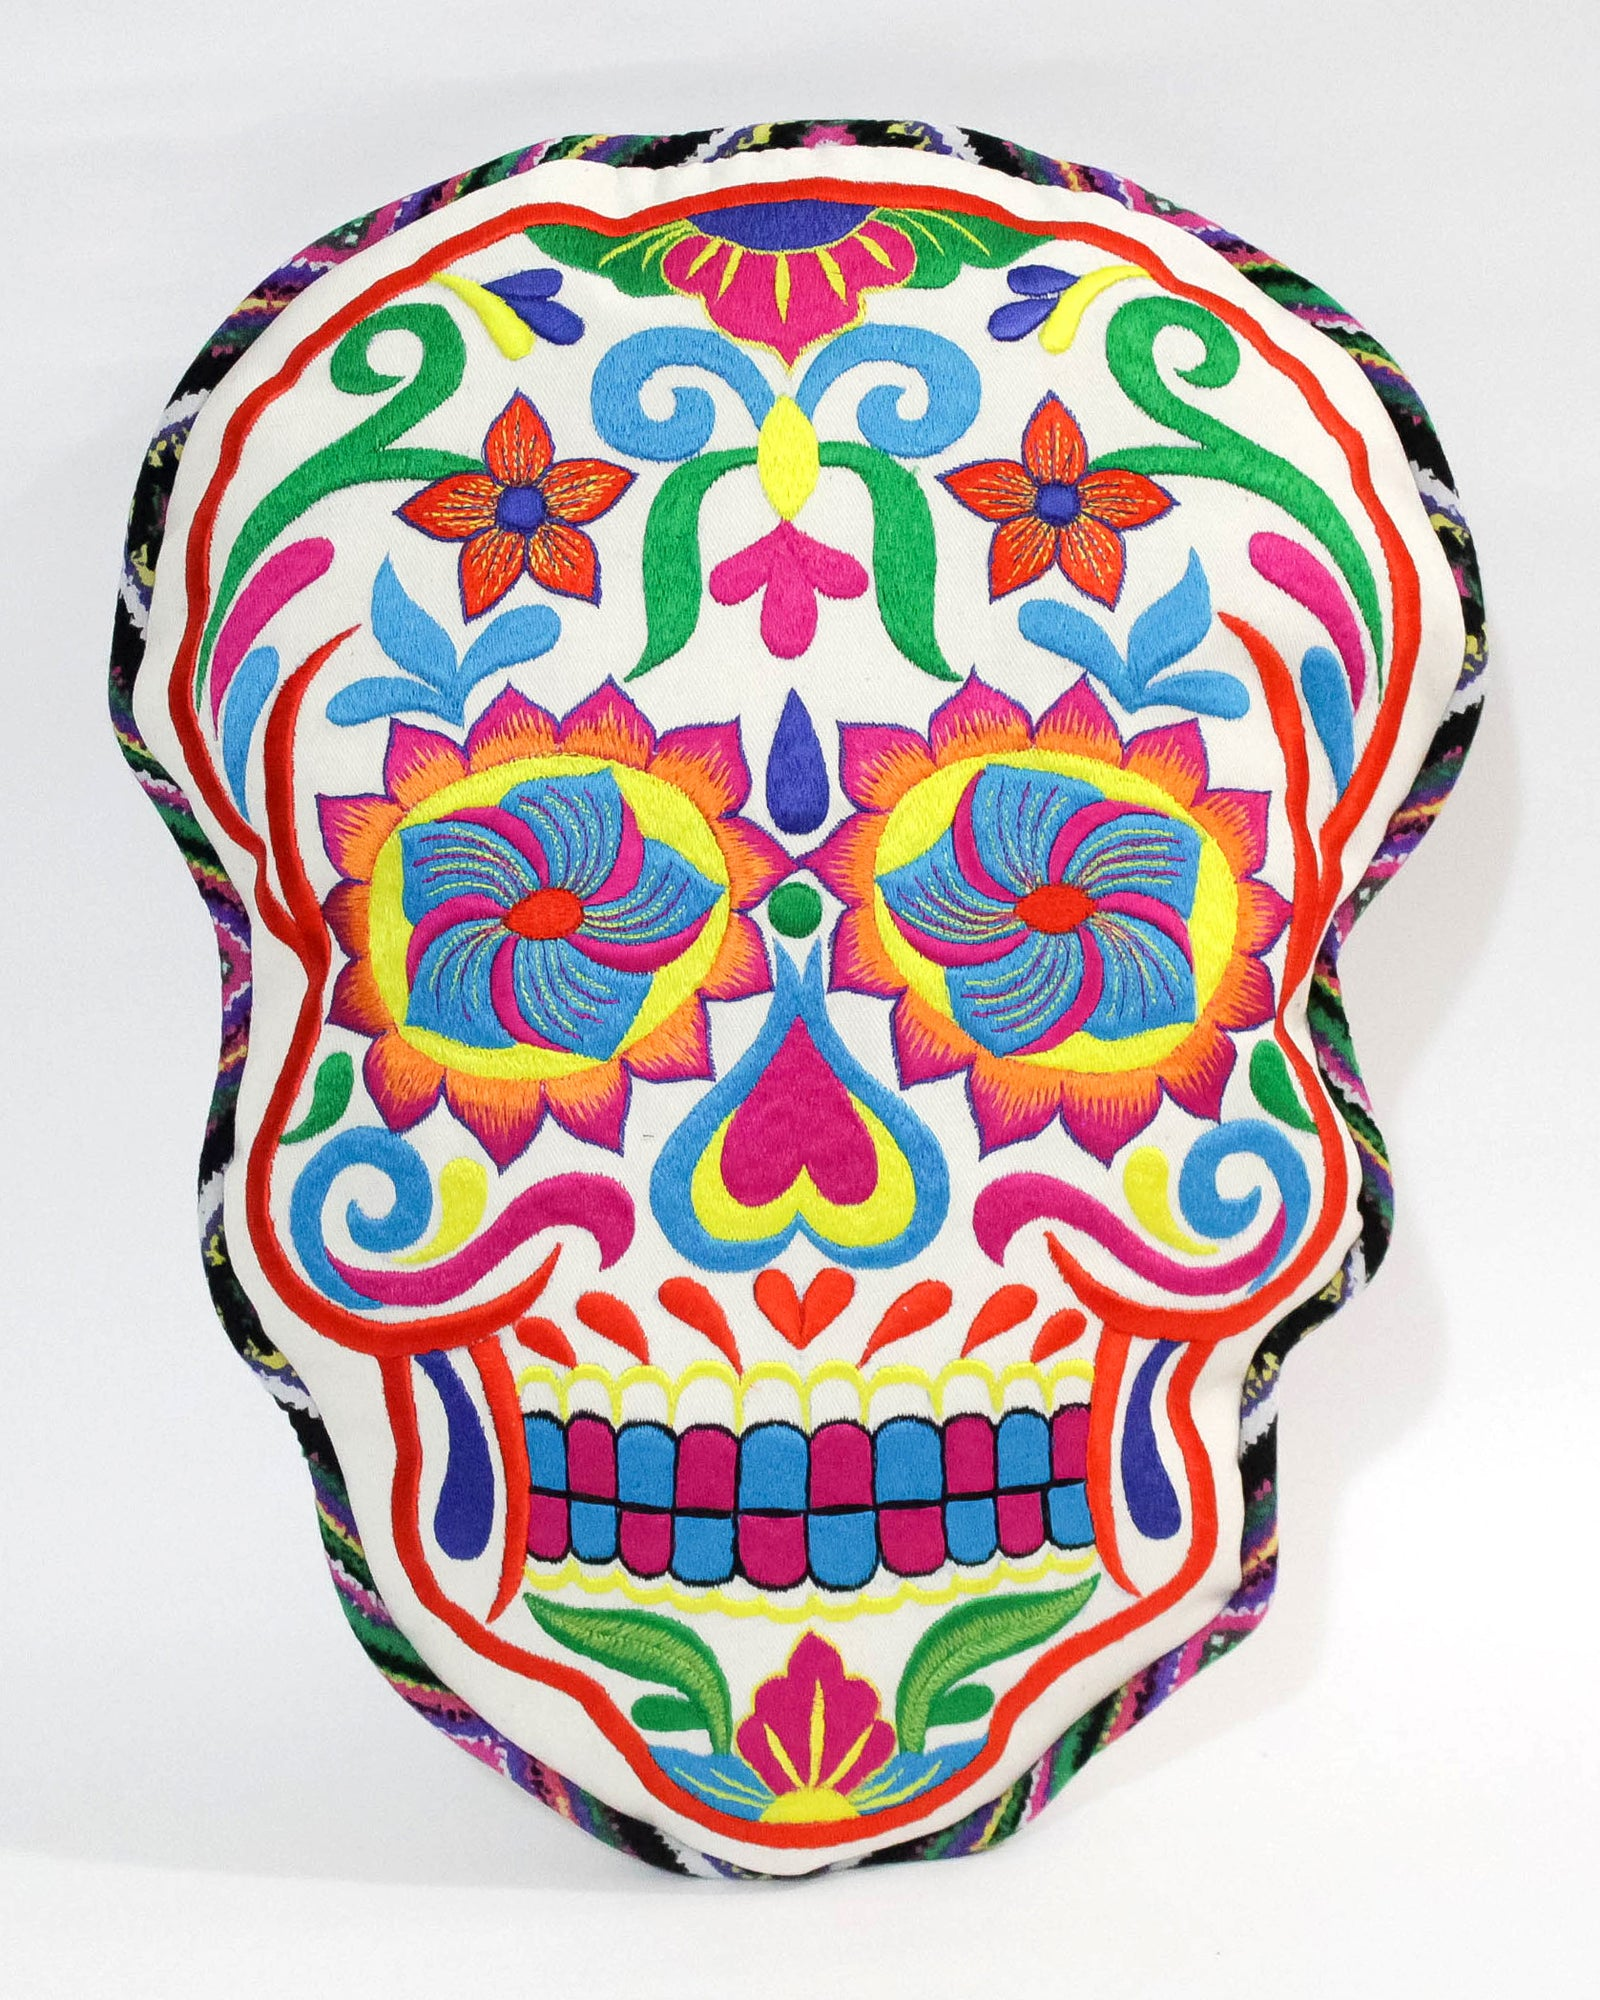 Mexican Sugar Skull cushions on white